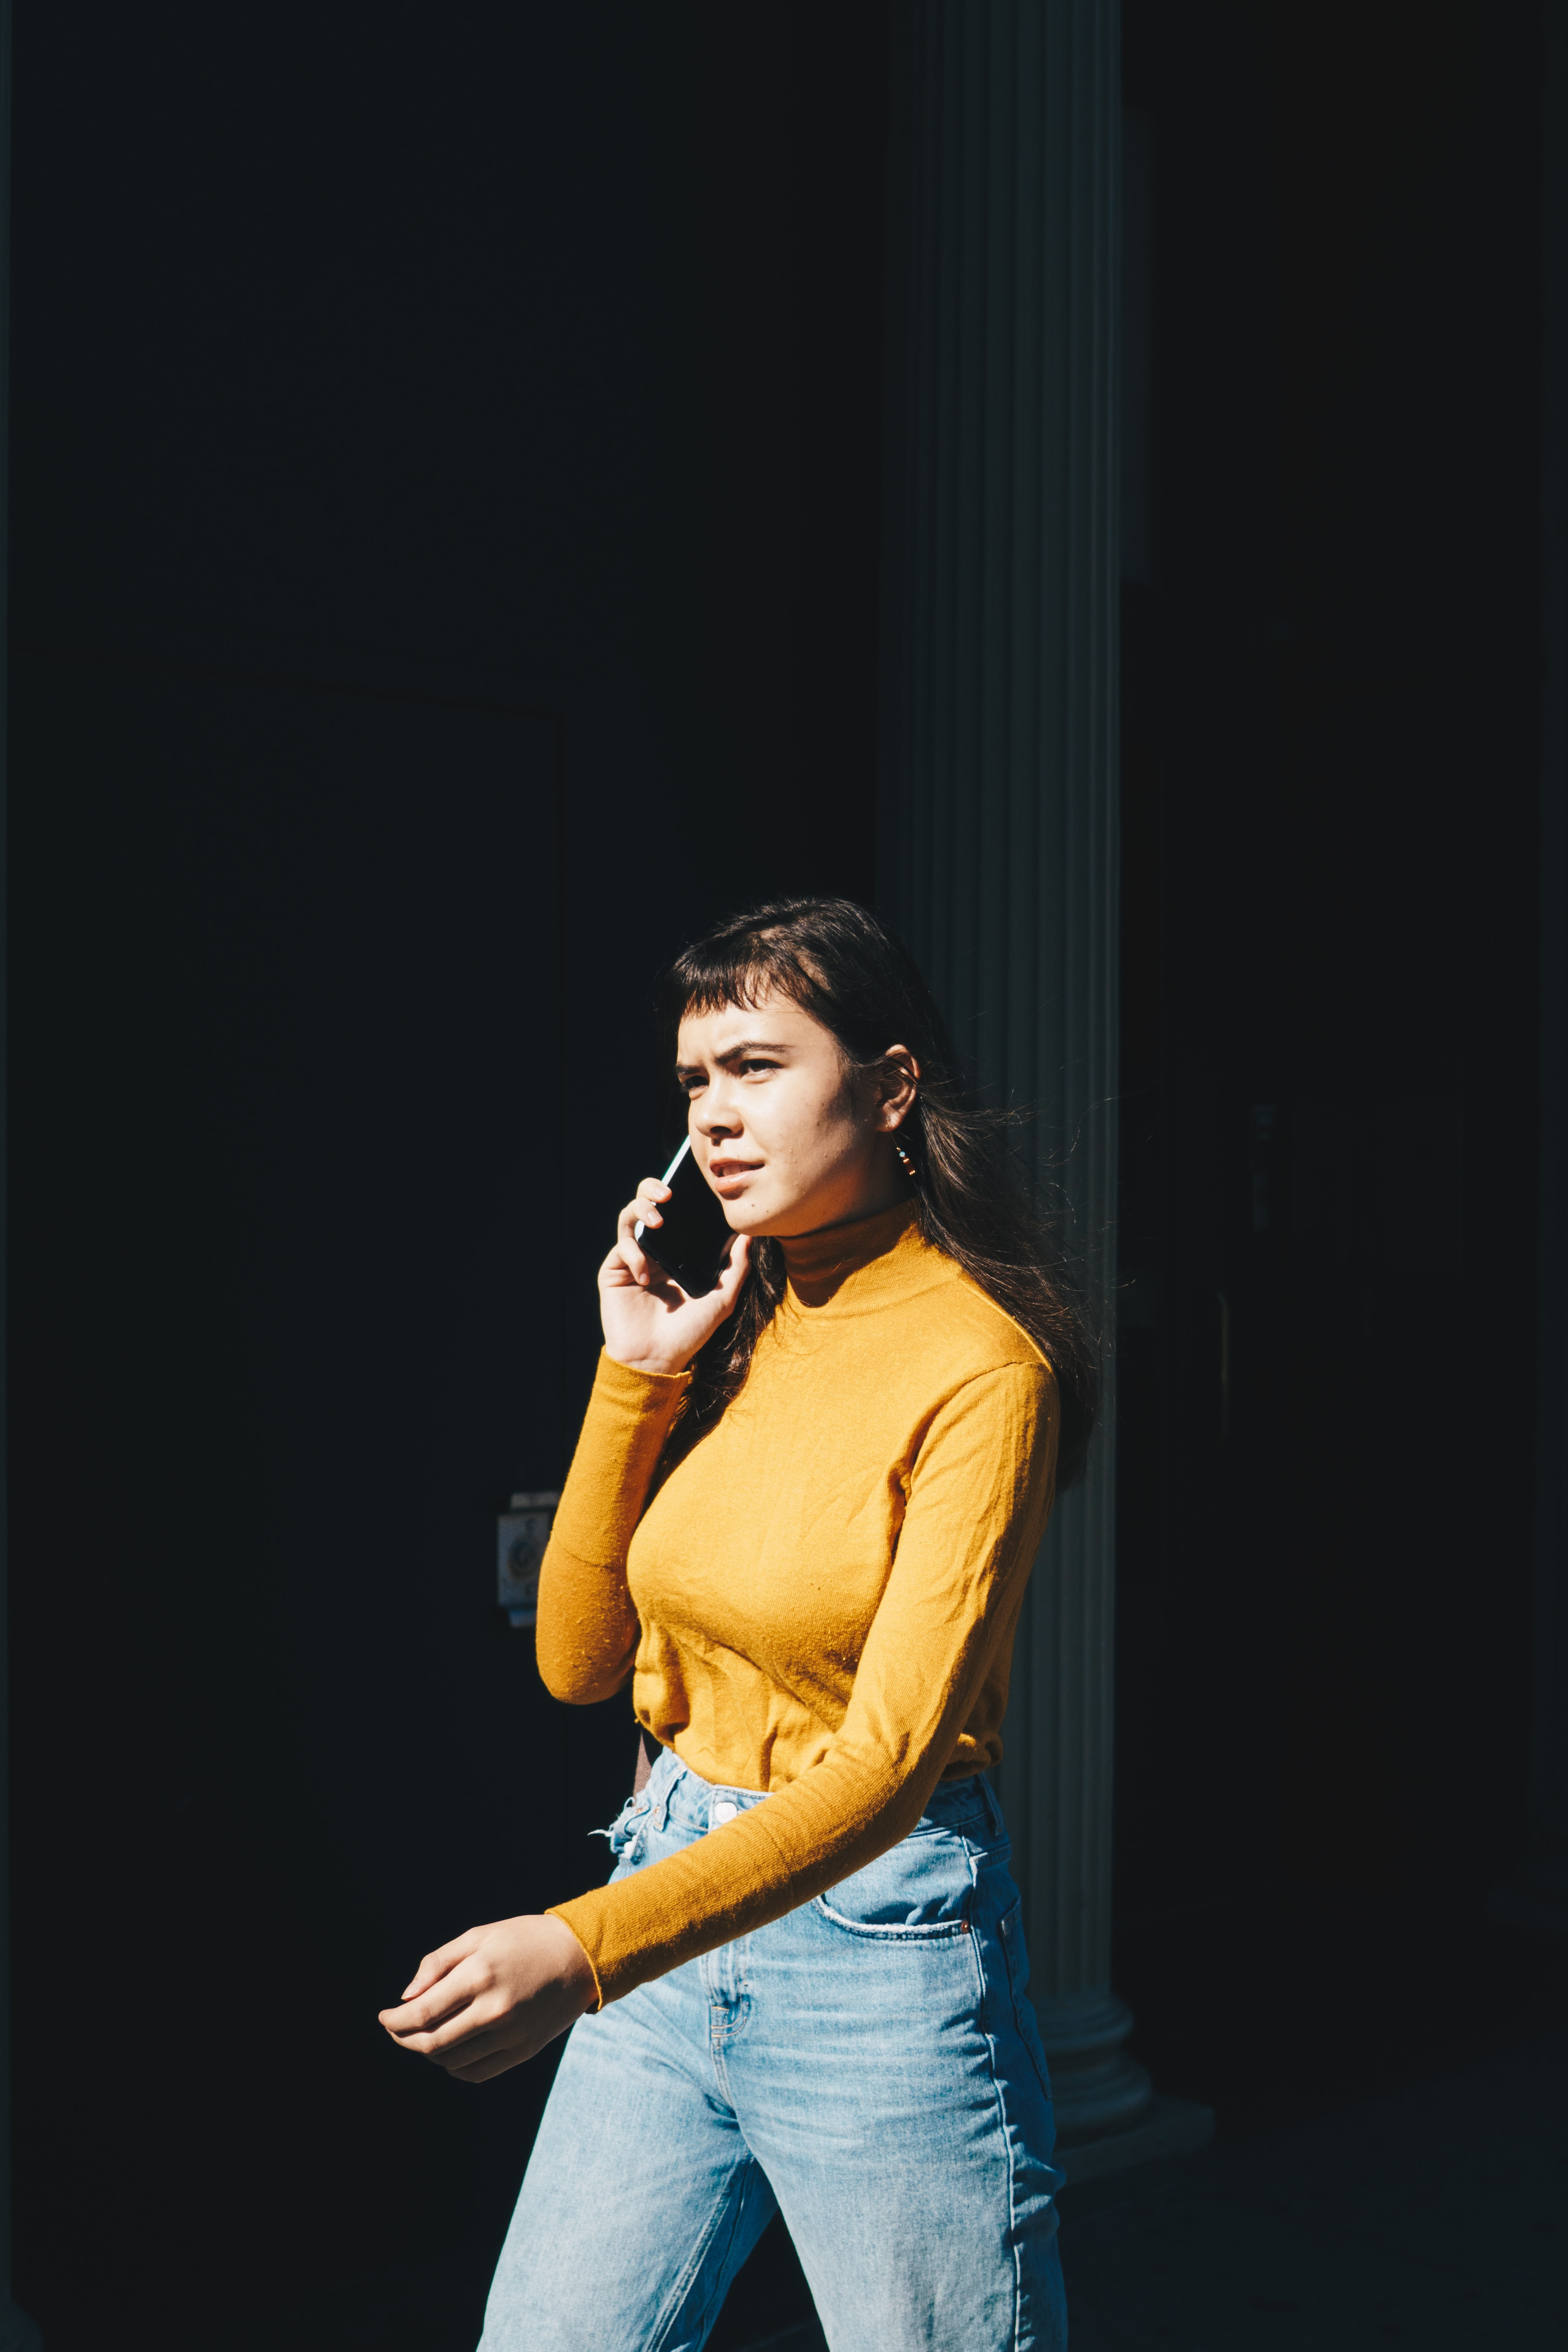 woman walking with phone on her right ear during daytime